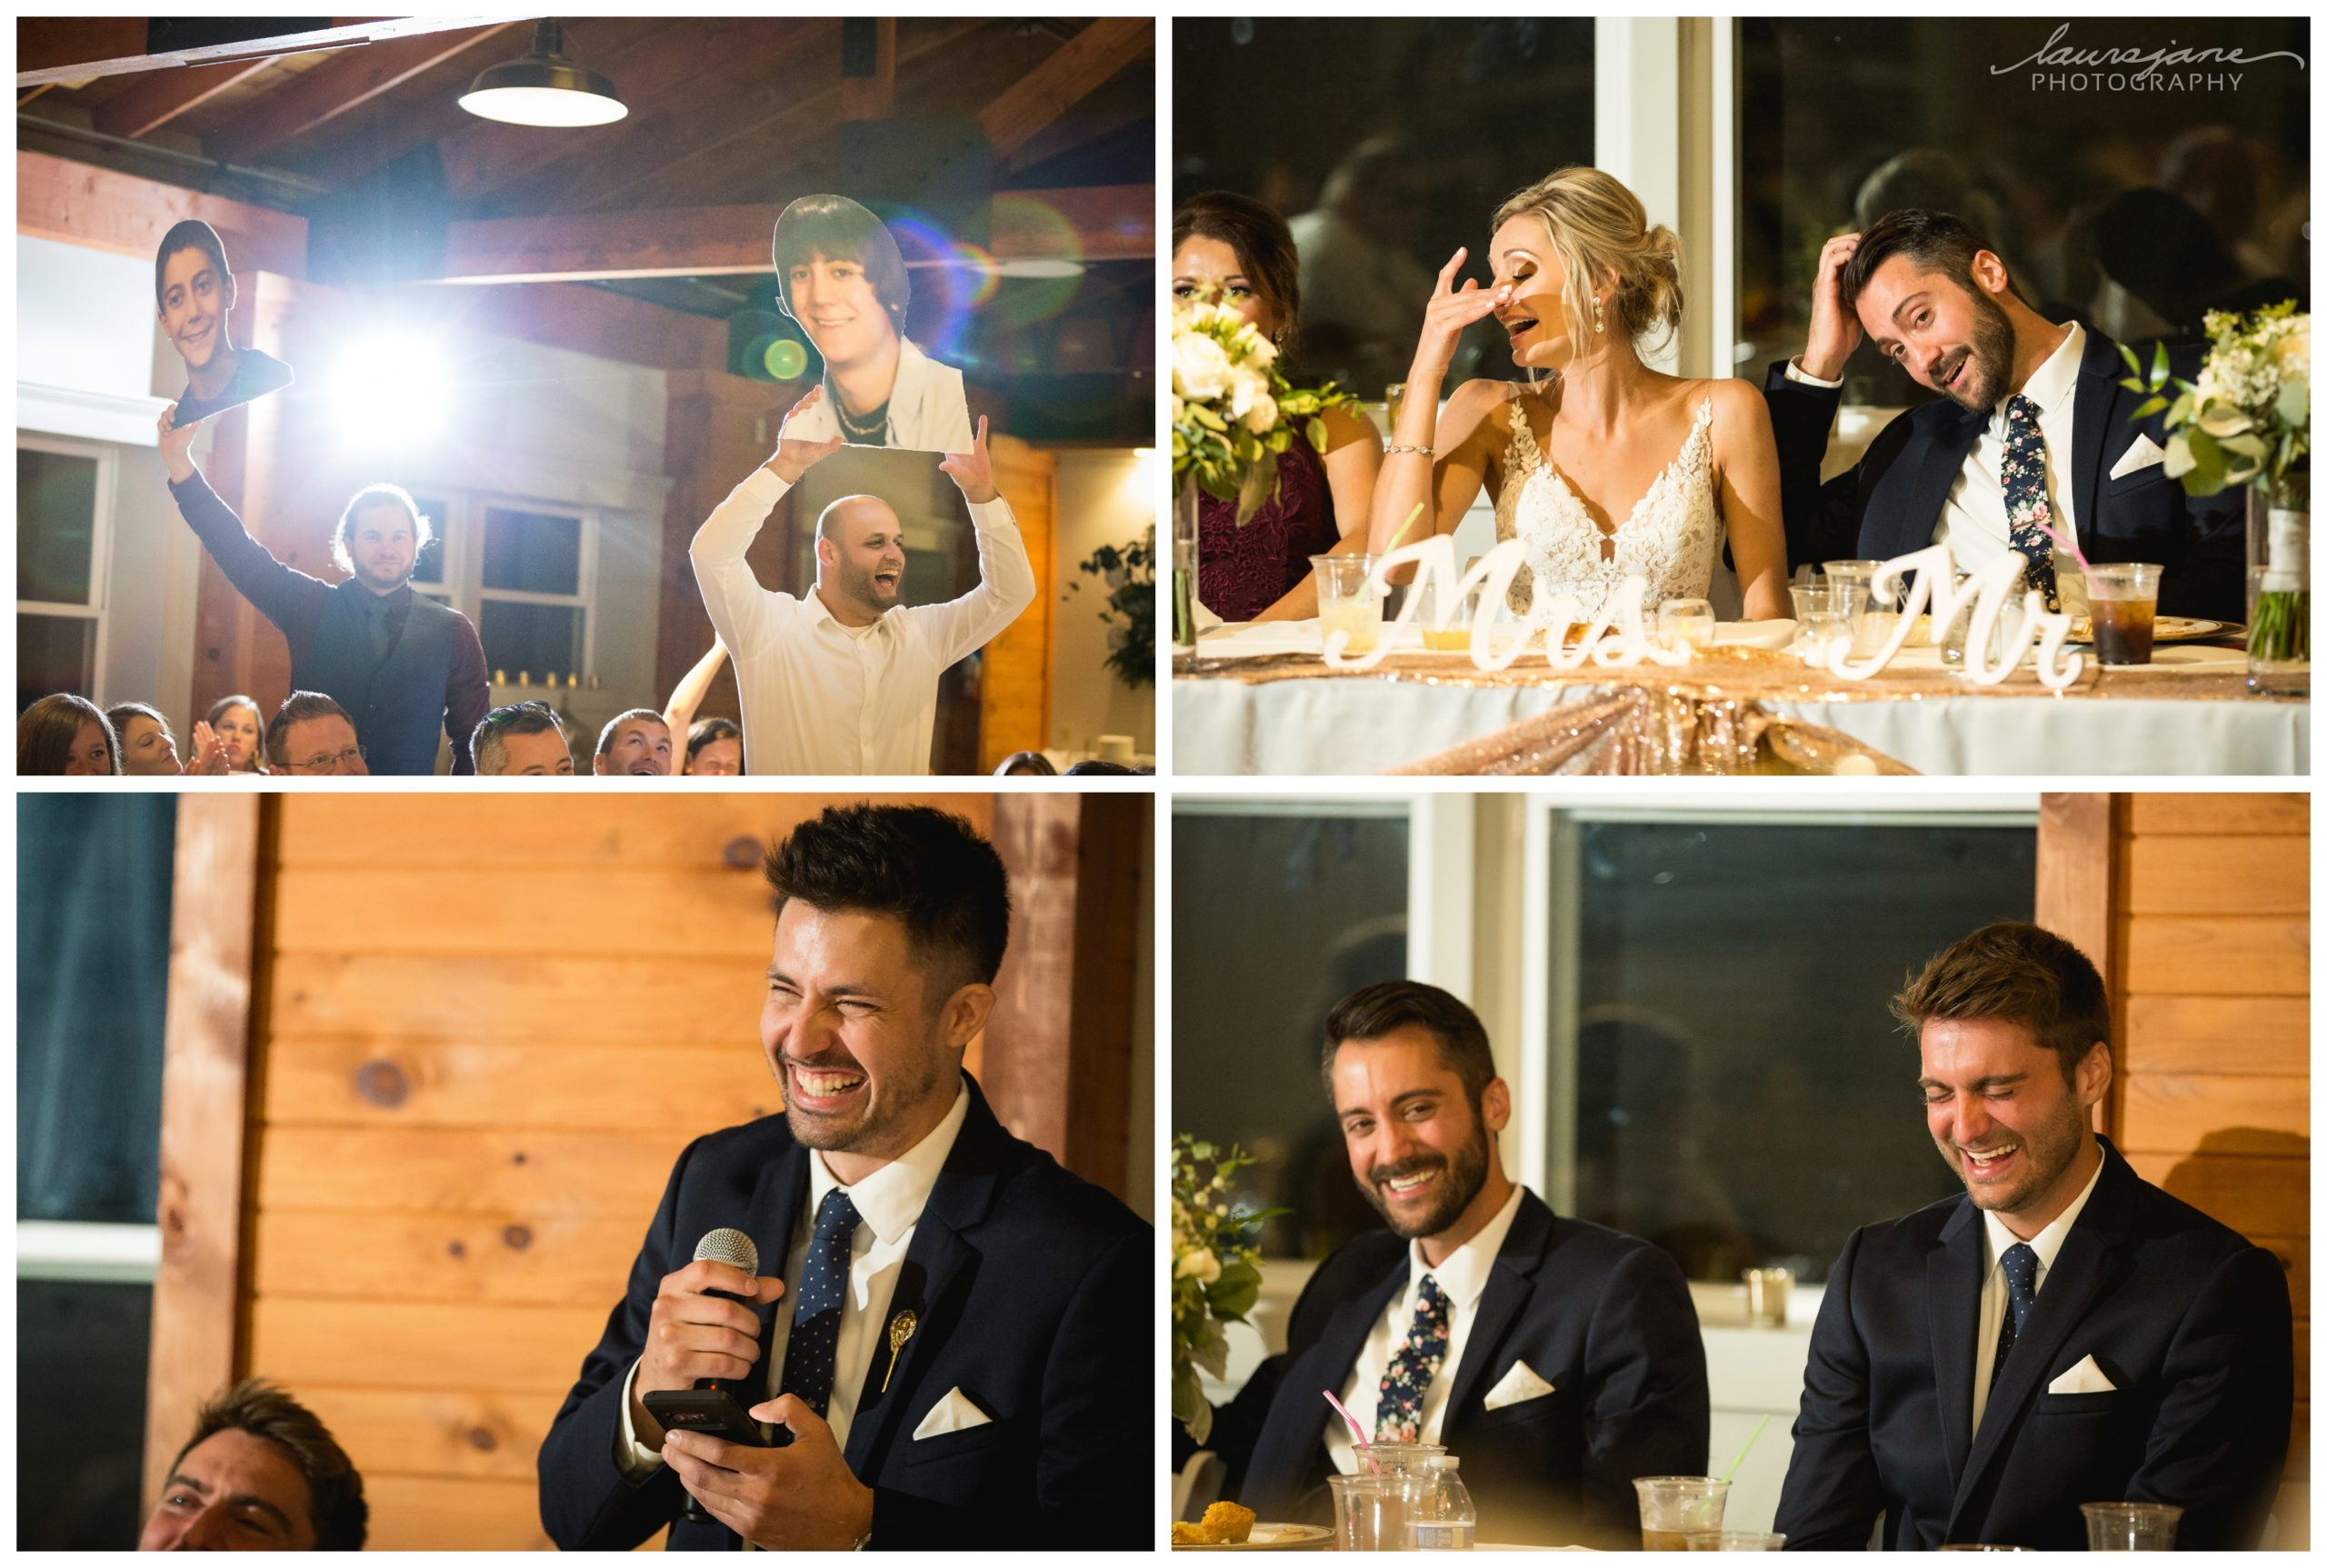 Hilarious Wedding Speeches at Richfield Wedding